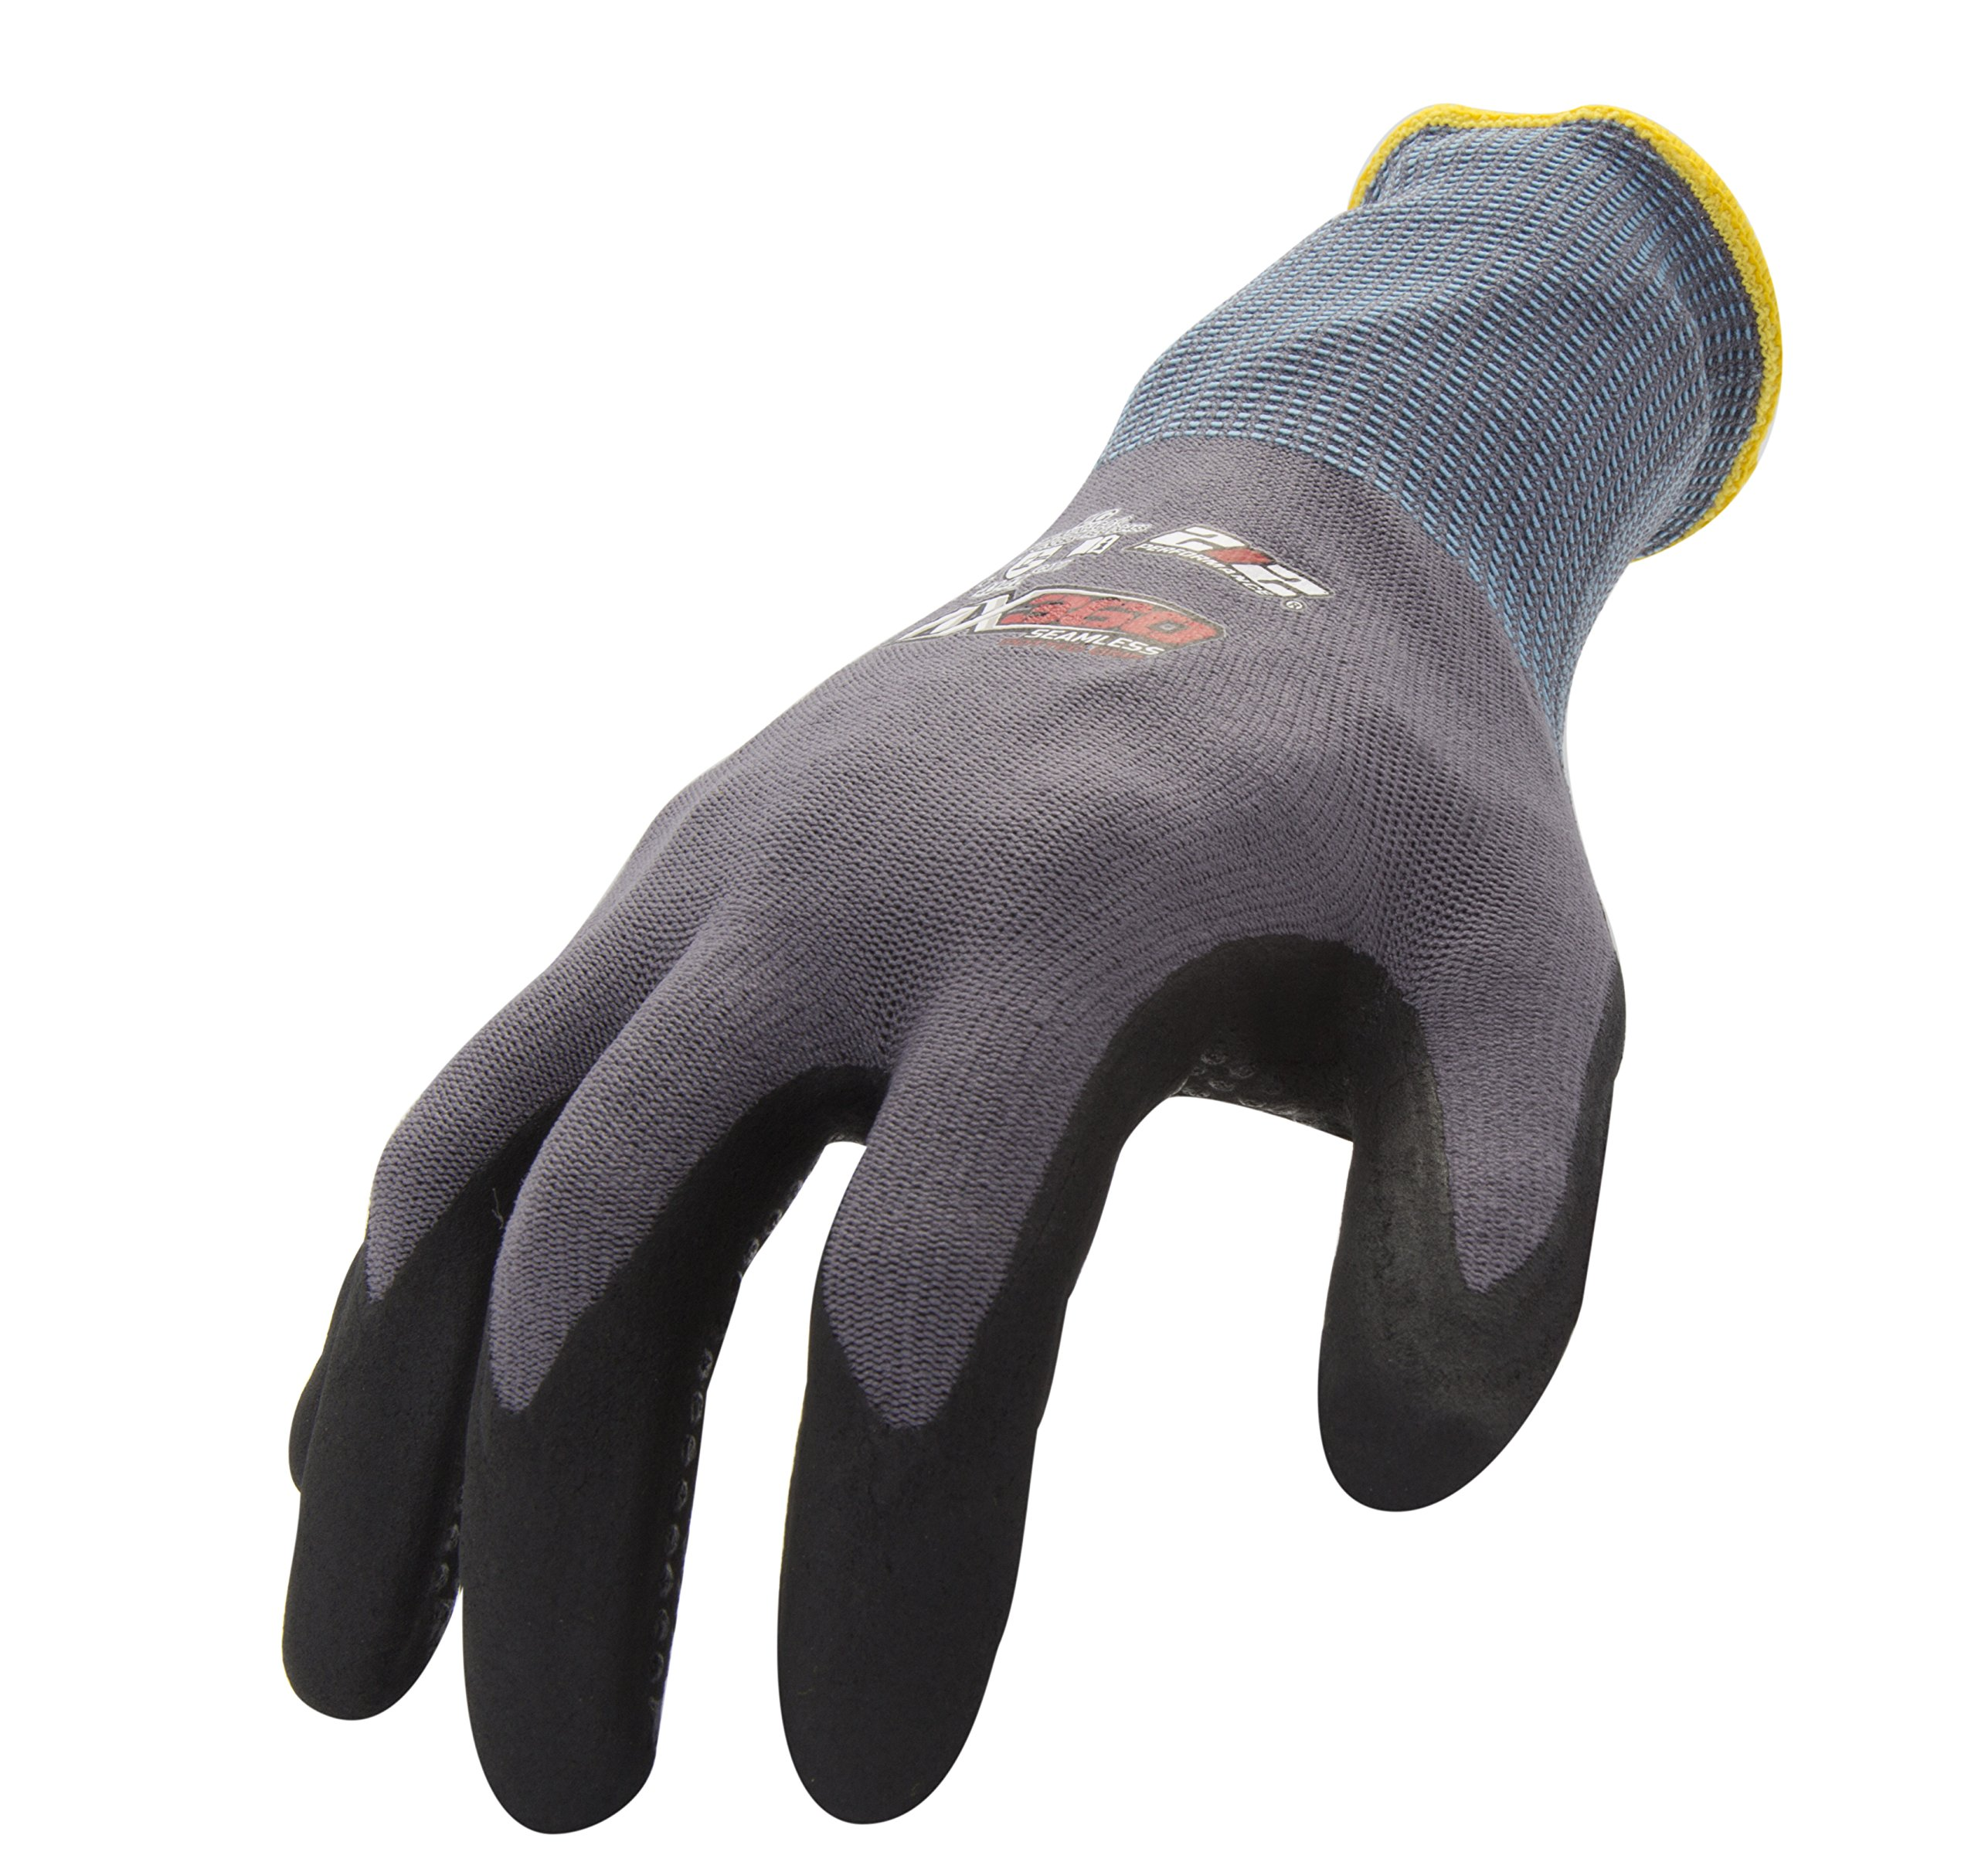 212 Performance Gloves AXDG-16-010 AX360 Dotted Grip Nitrile-dipped Work Glove, 12-Pair Bulk Pack, Large by 212 Performance Gloves (Image #1)